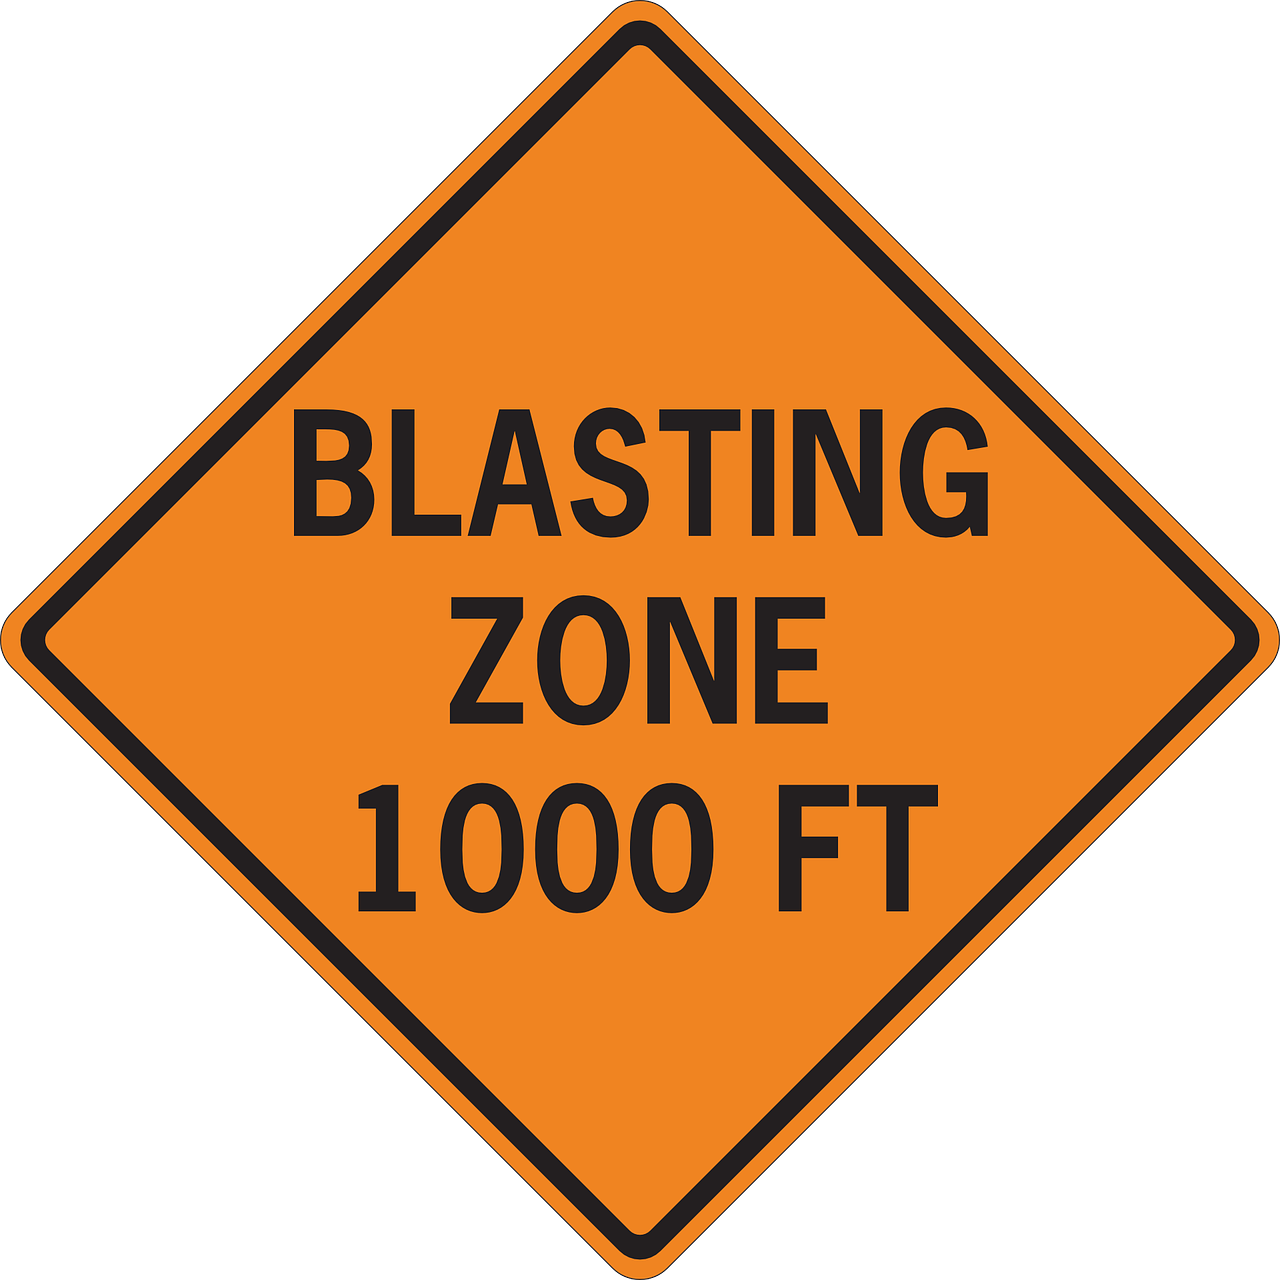 Clipart road outline. Blasting zone feet png